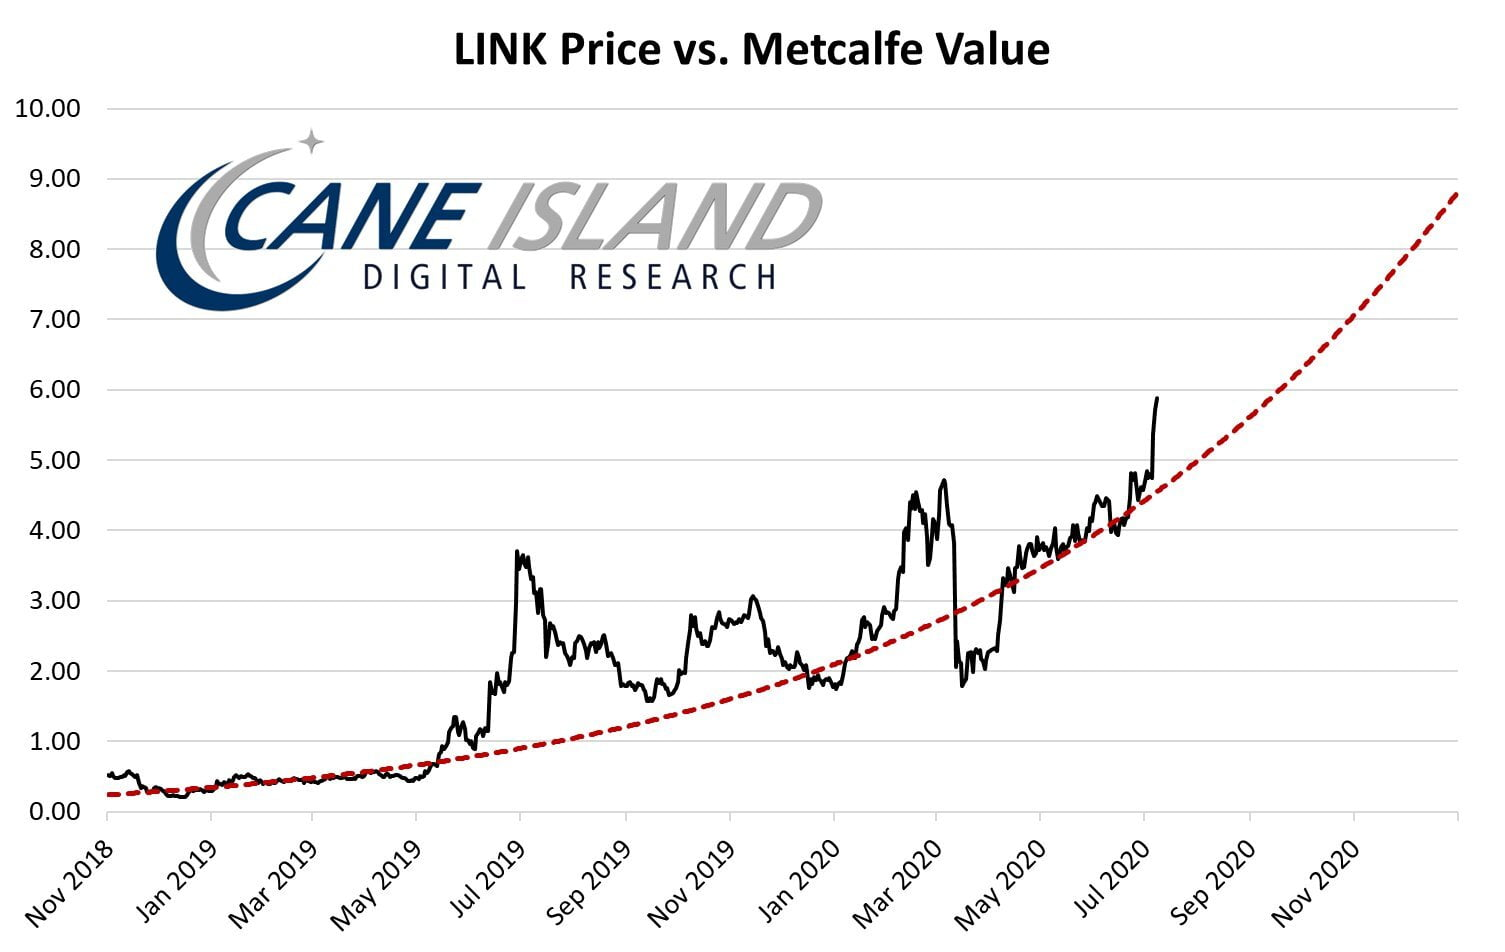 LINK vs Metcalfe Value